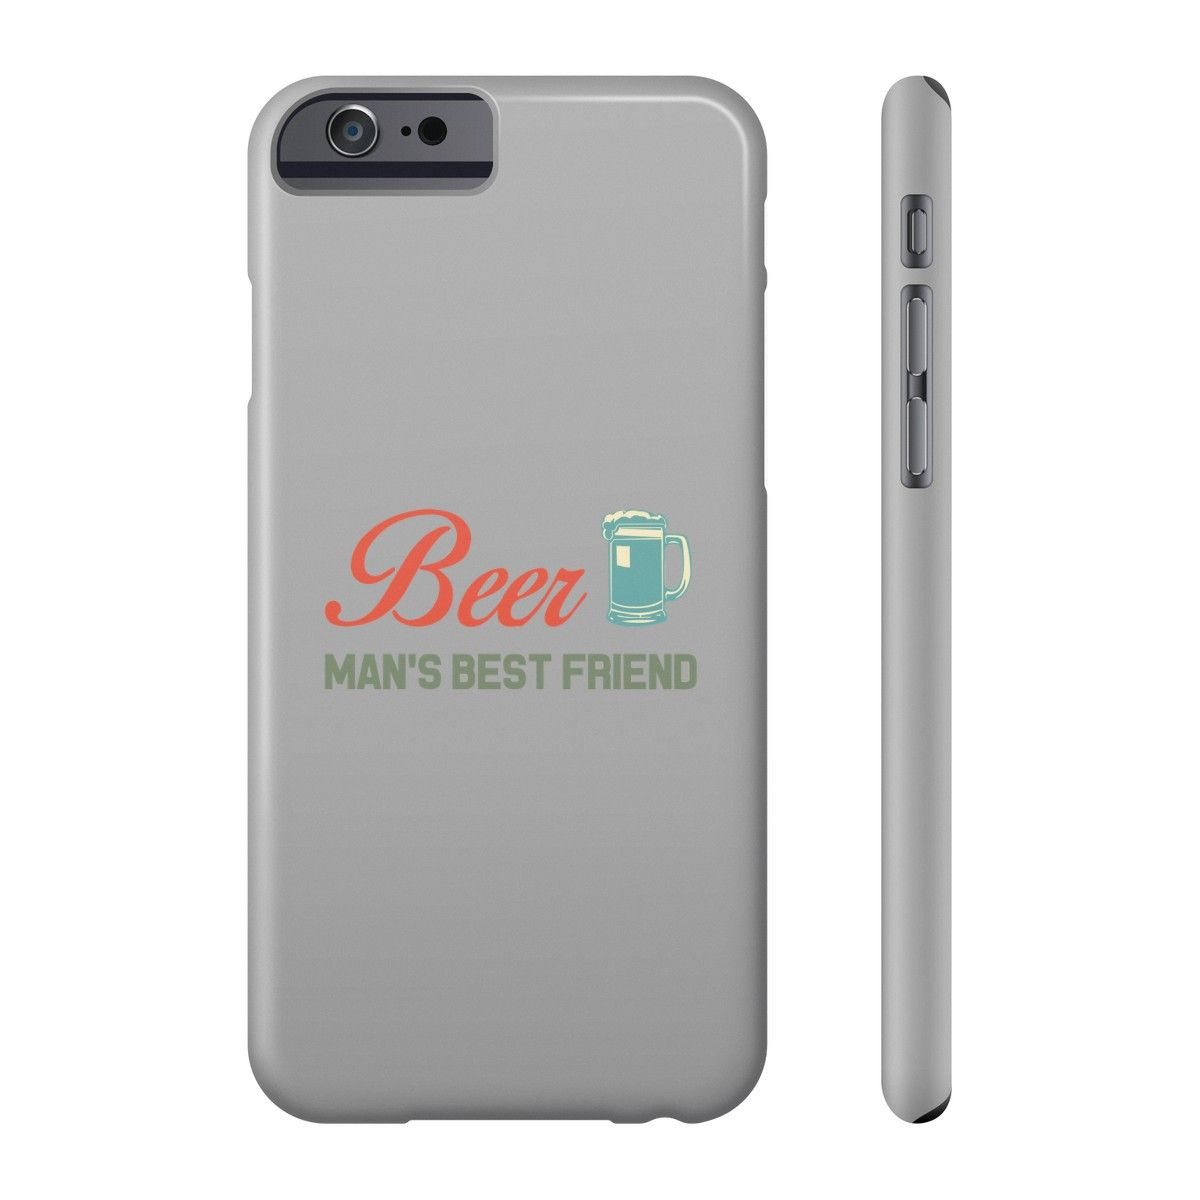 iPhone 4/4s/5/5s/5se/5c/6/6s/6 plus/6s plus/7/7 plus Plastic Shell Case  #value #quality #phonecases #case #iPhone #Samsung #htc #alcatel #doogee #sony